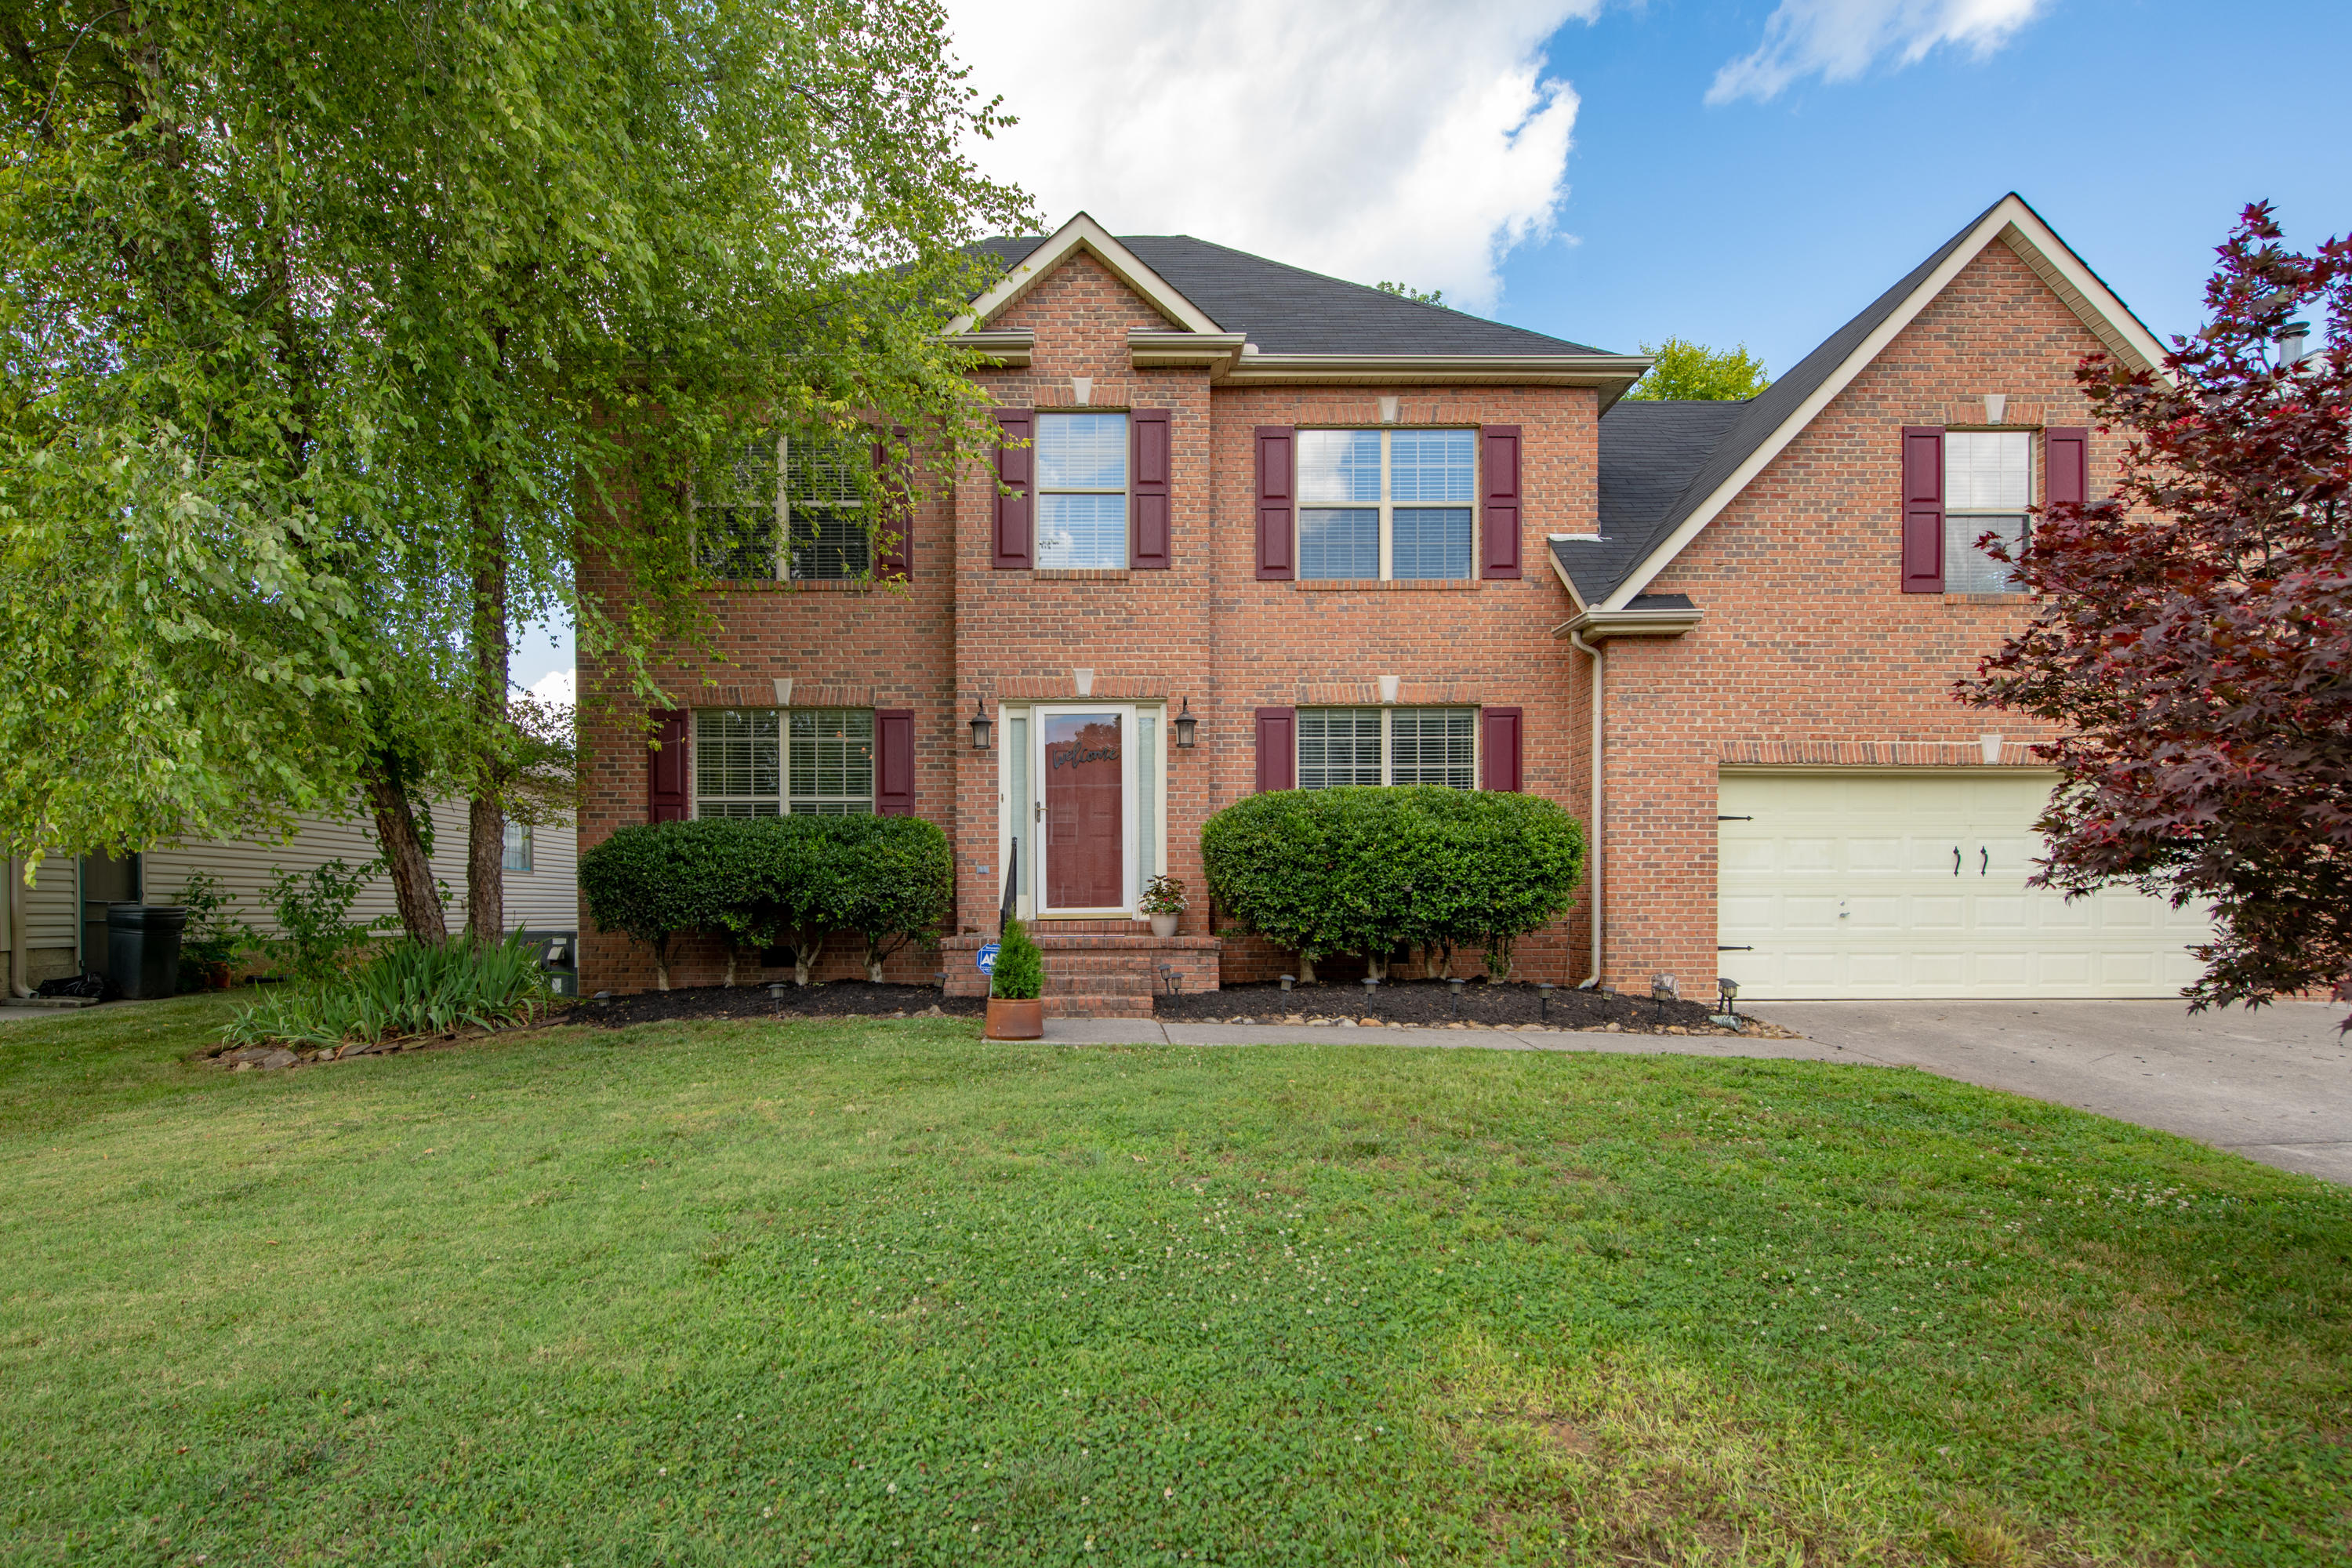 10043 Highgate, Knoxville, Tennessee, United States 37931, 3 Bedrooms Bedrooms, ,2 BathroomsBathrooms,Single Family,For Sale,Highgate,1122945